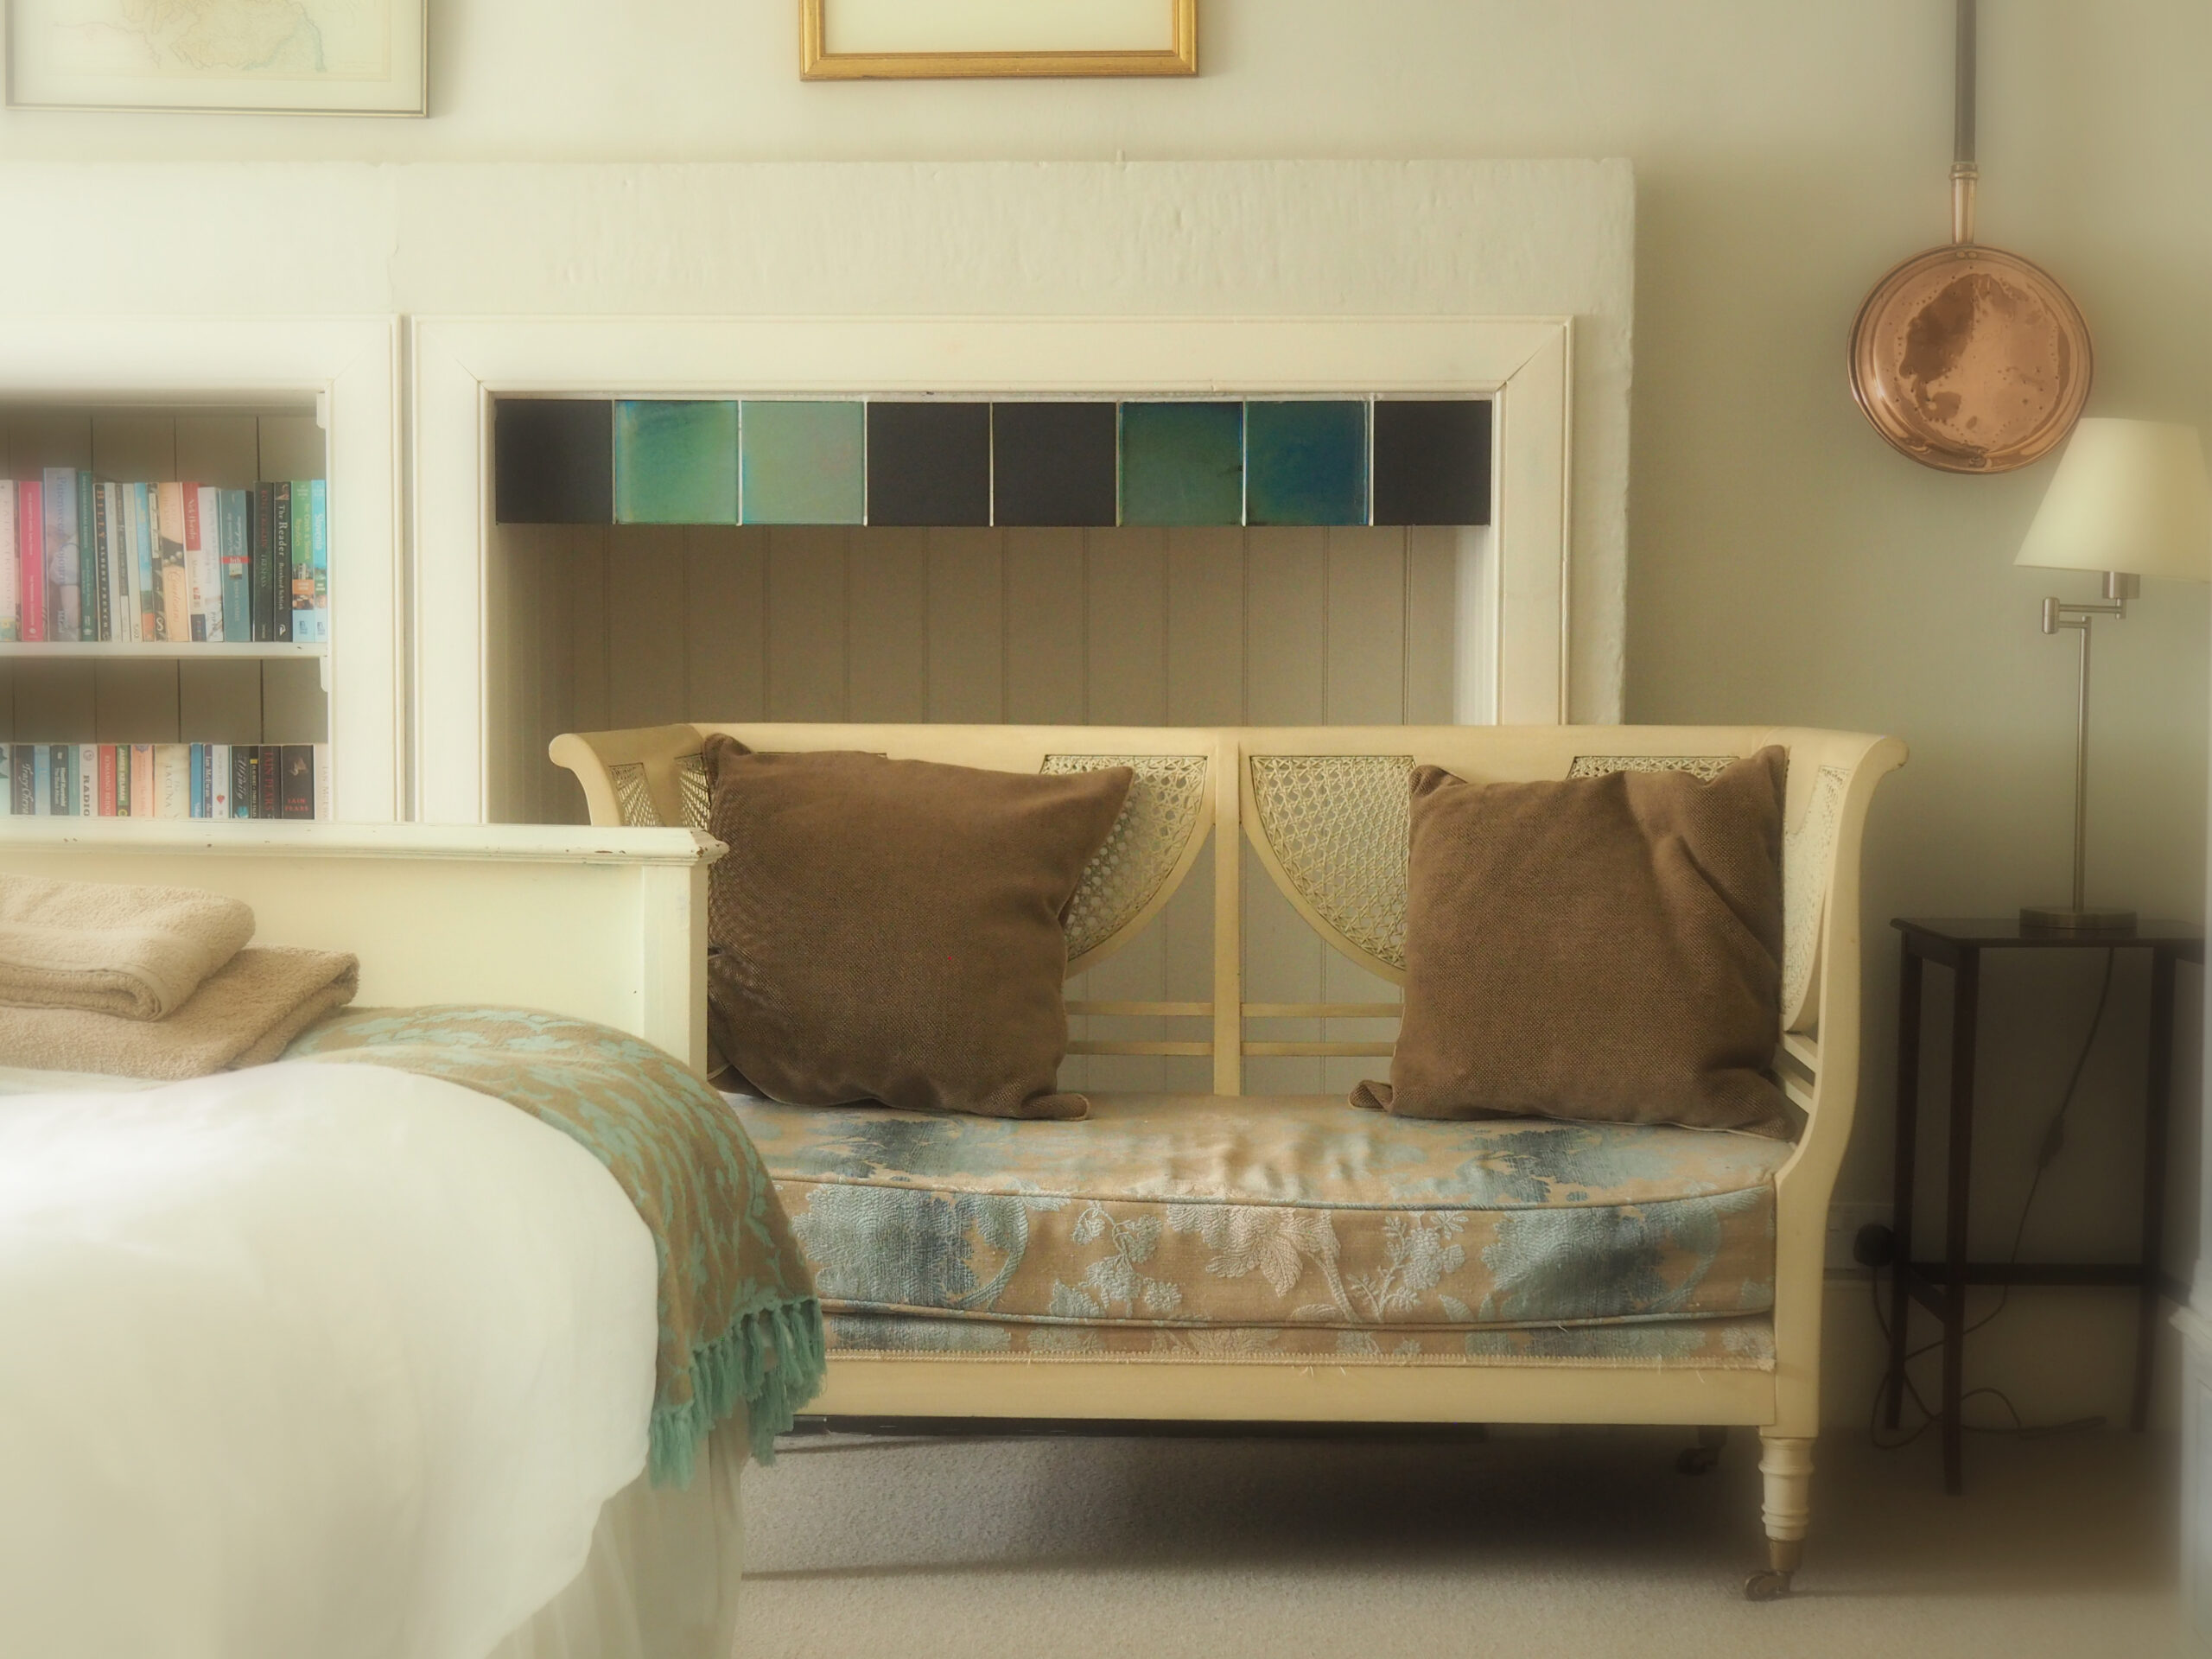 Bedroom-2-additional-seating-and-nook-with-desk-out-of-shot